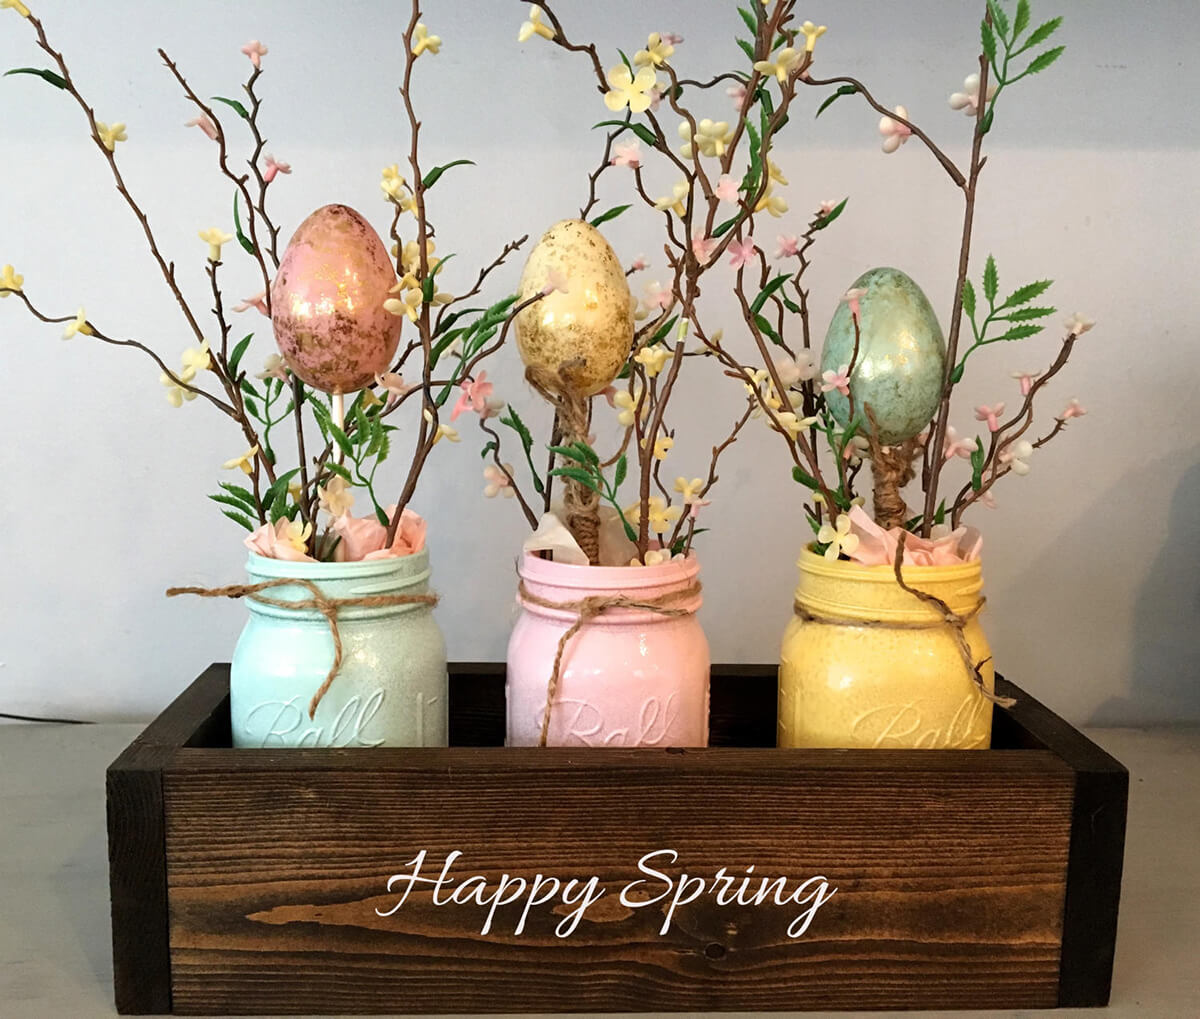 Planter Box Styled Spring Tree Centerpiece